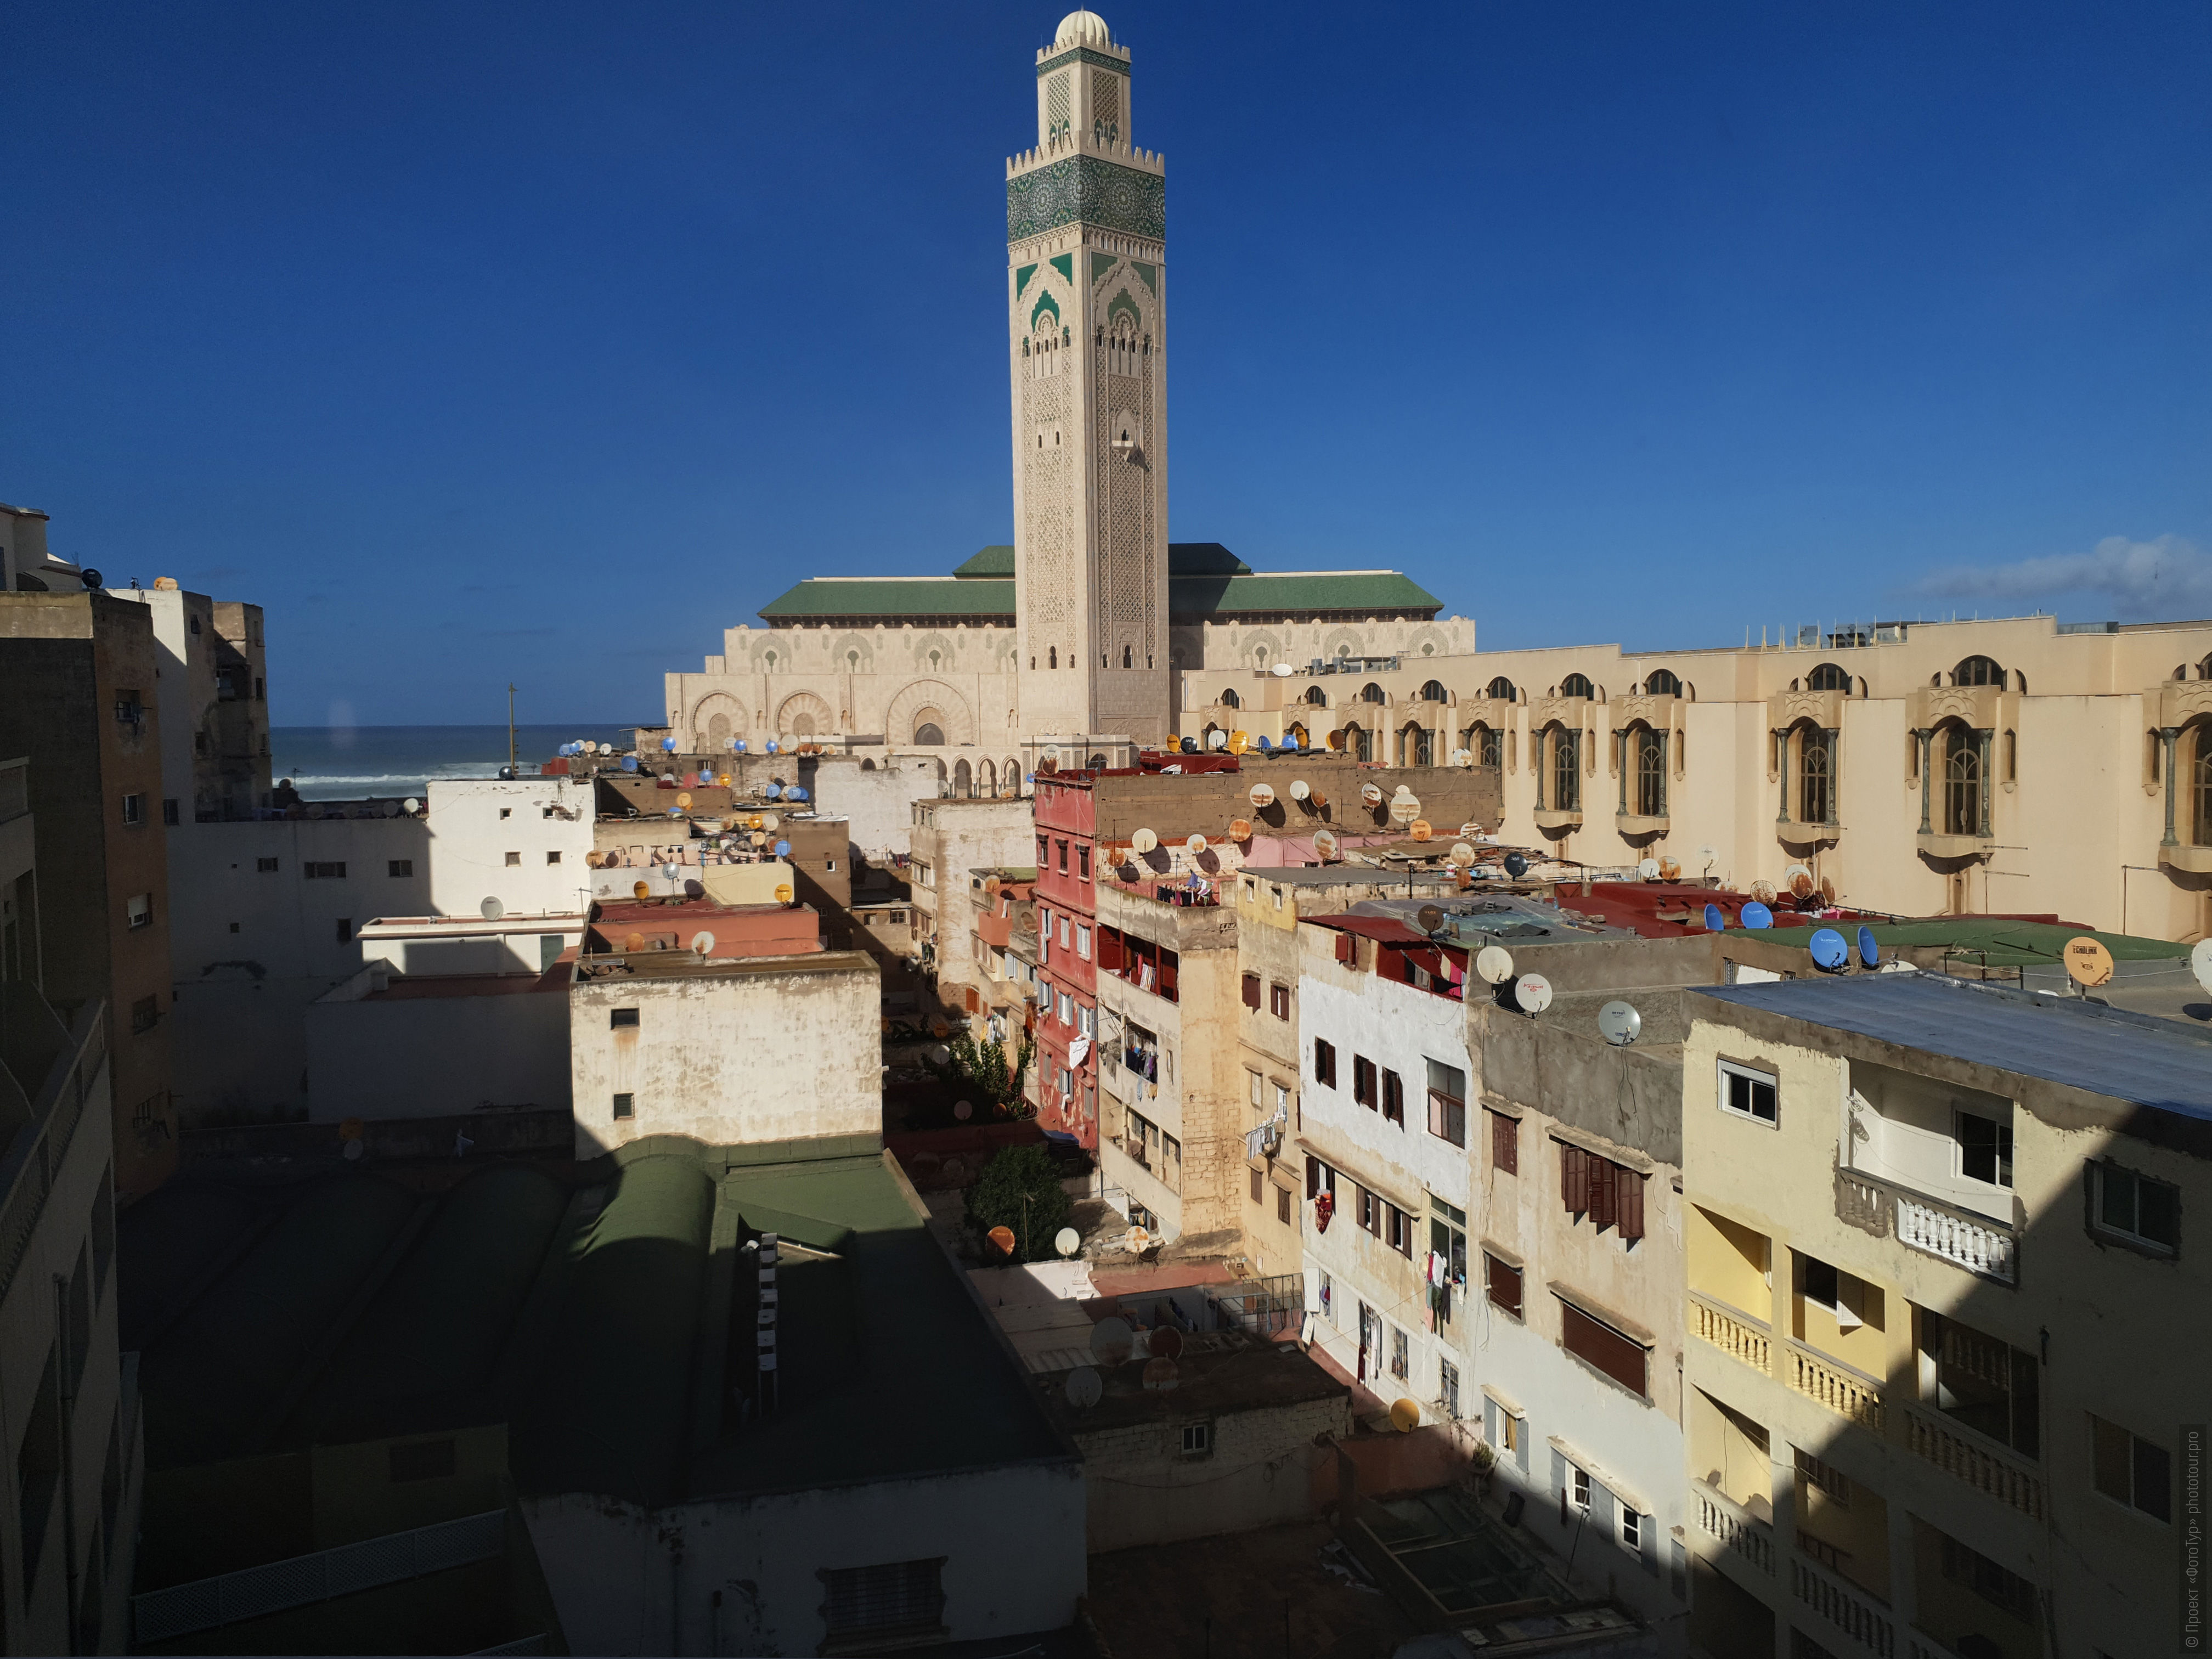 Hassan II Mosque. Adventure photo tour: medina, cascades, sands and ports of Morocco, April 4 - 17, 2020.